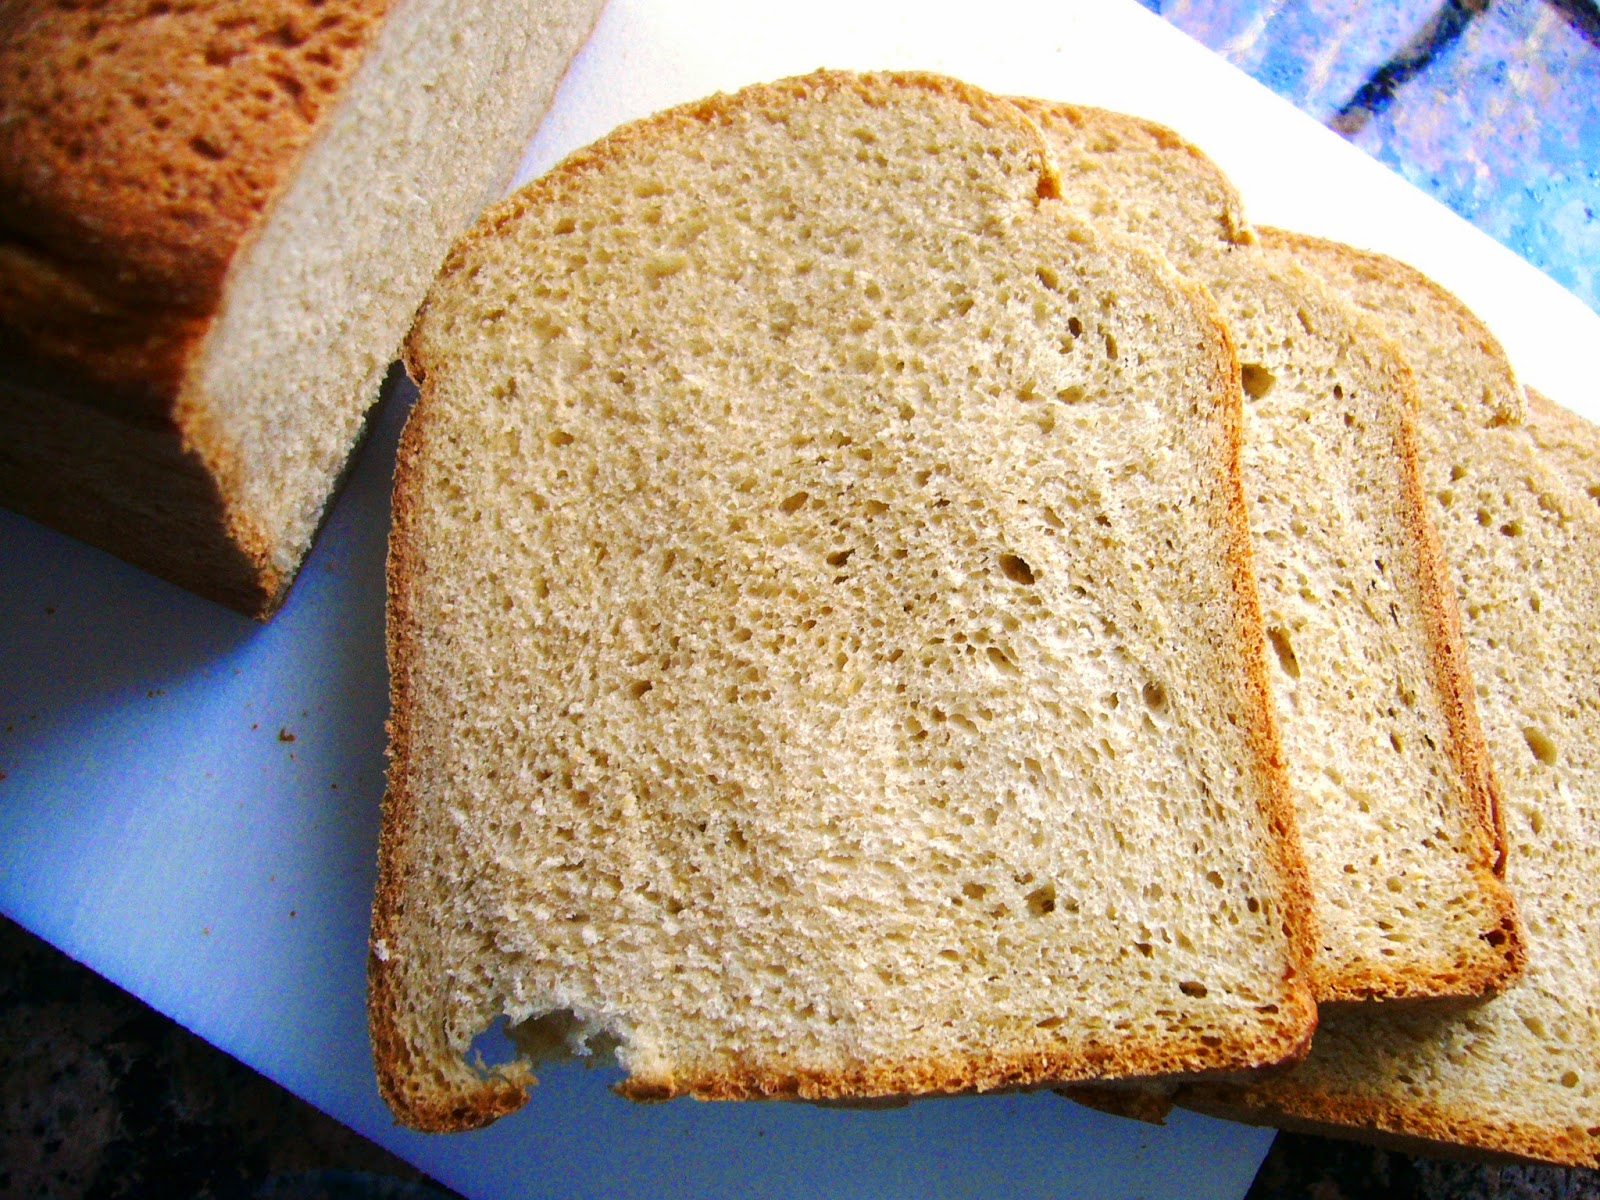 Whole Wheat bread baked in the West Bend 2.5 Pound Hi-Rise Bread Machine